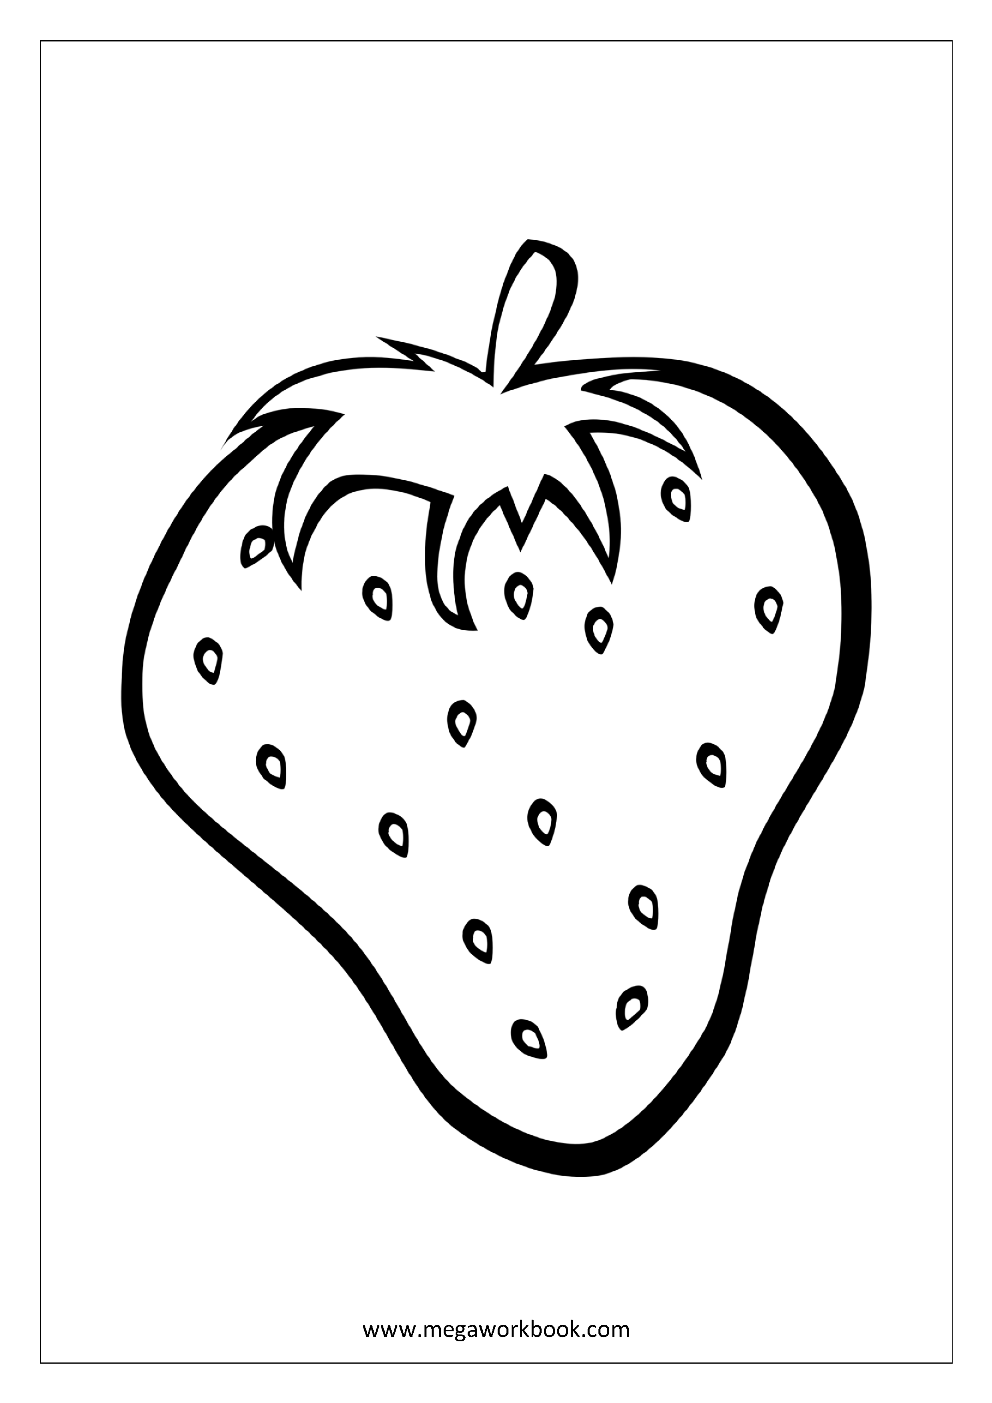 - Fruit Coloring Pages - Vegetable Coloring Pages - Food Coloring